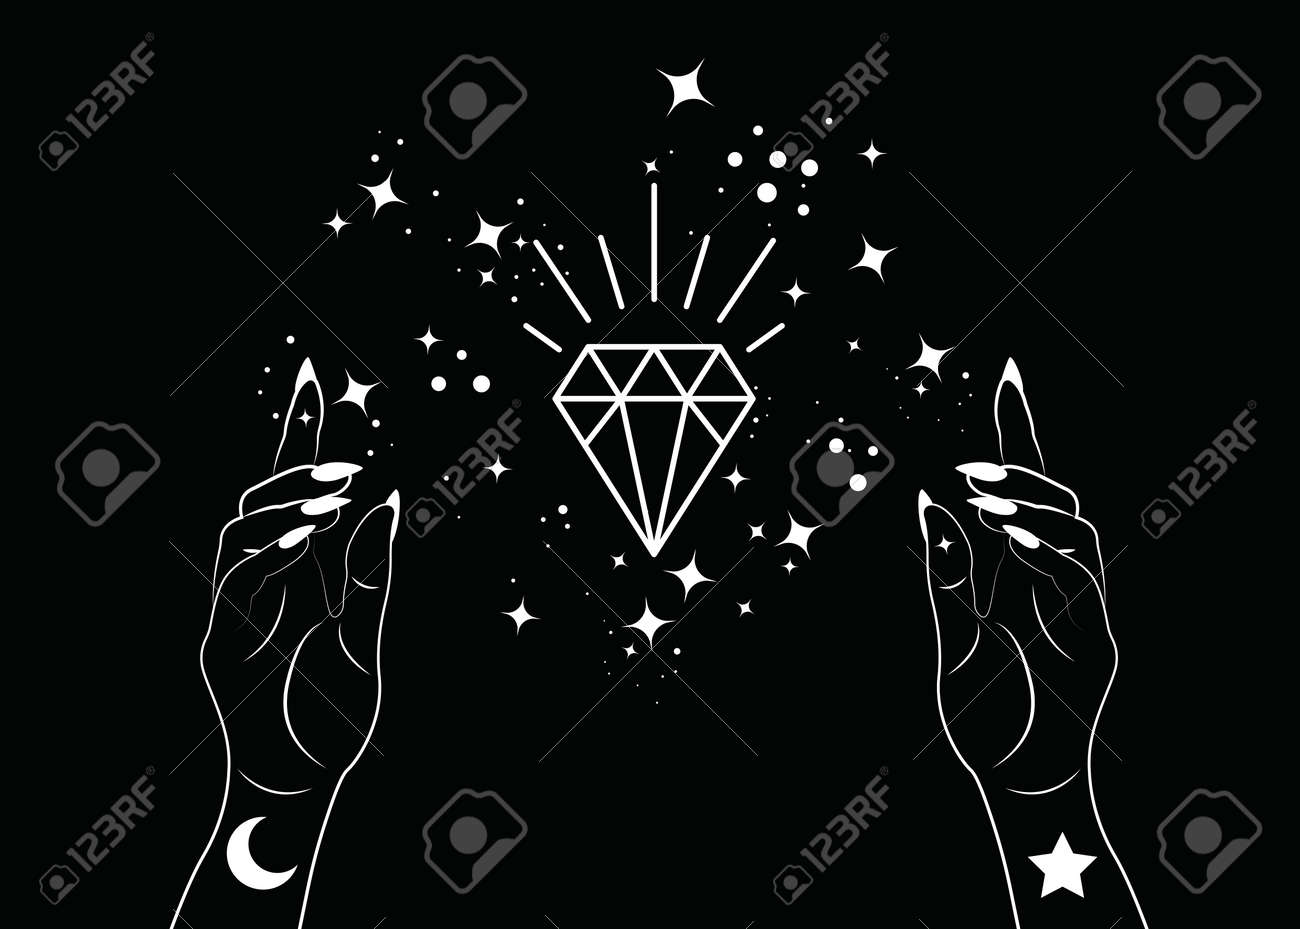 Mystical Woman Hands alchemy esoteric magic space stars, crystal symbol, Sacred Geometry. Boho style Logo in white outline tattoo icon. Spiritual occultism mystic wicca sign. Vector isolated on black - 173569563